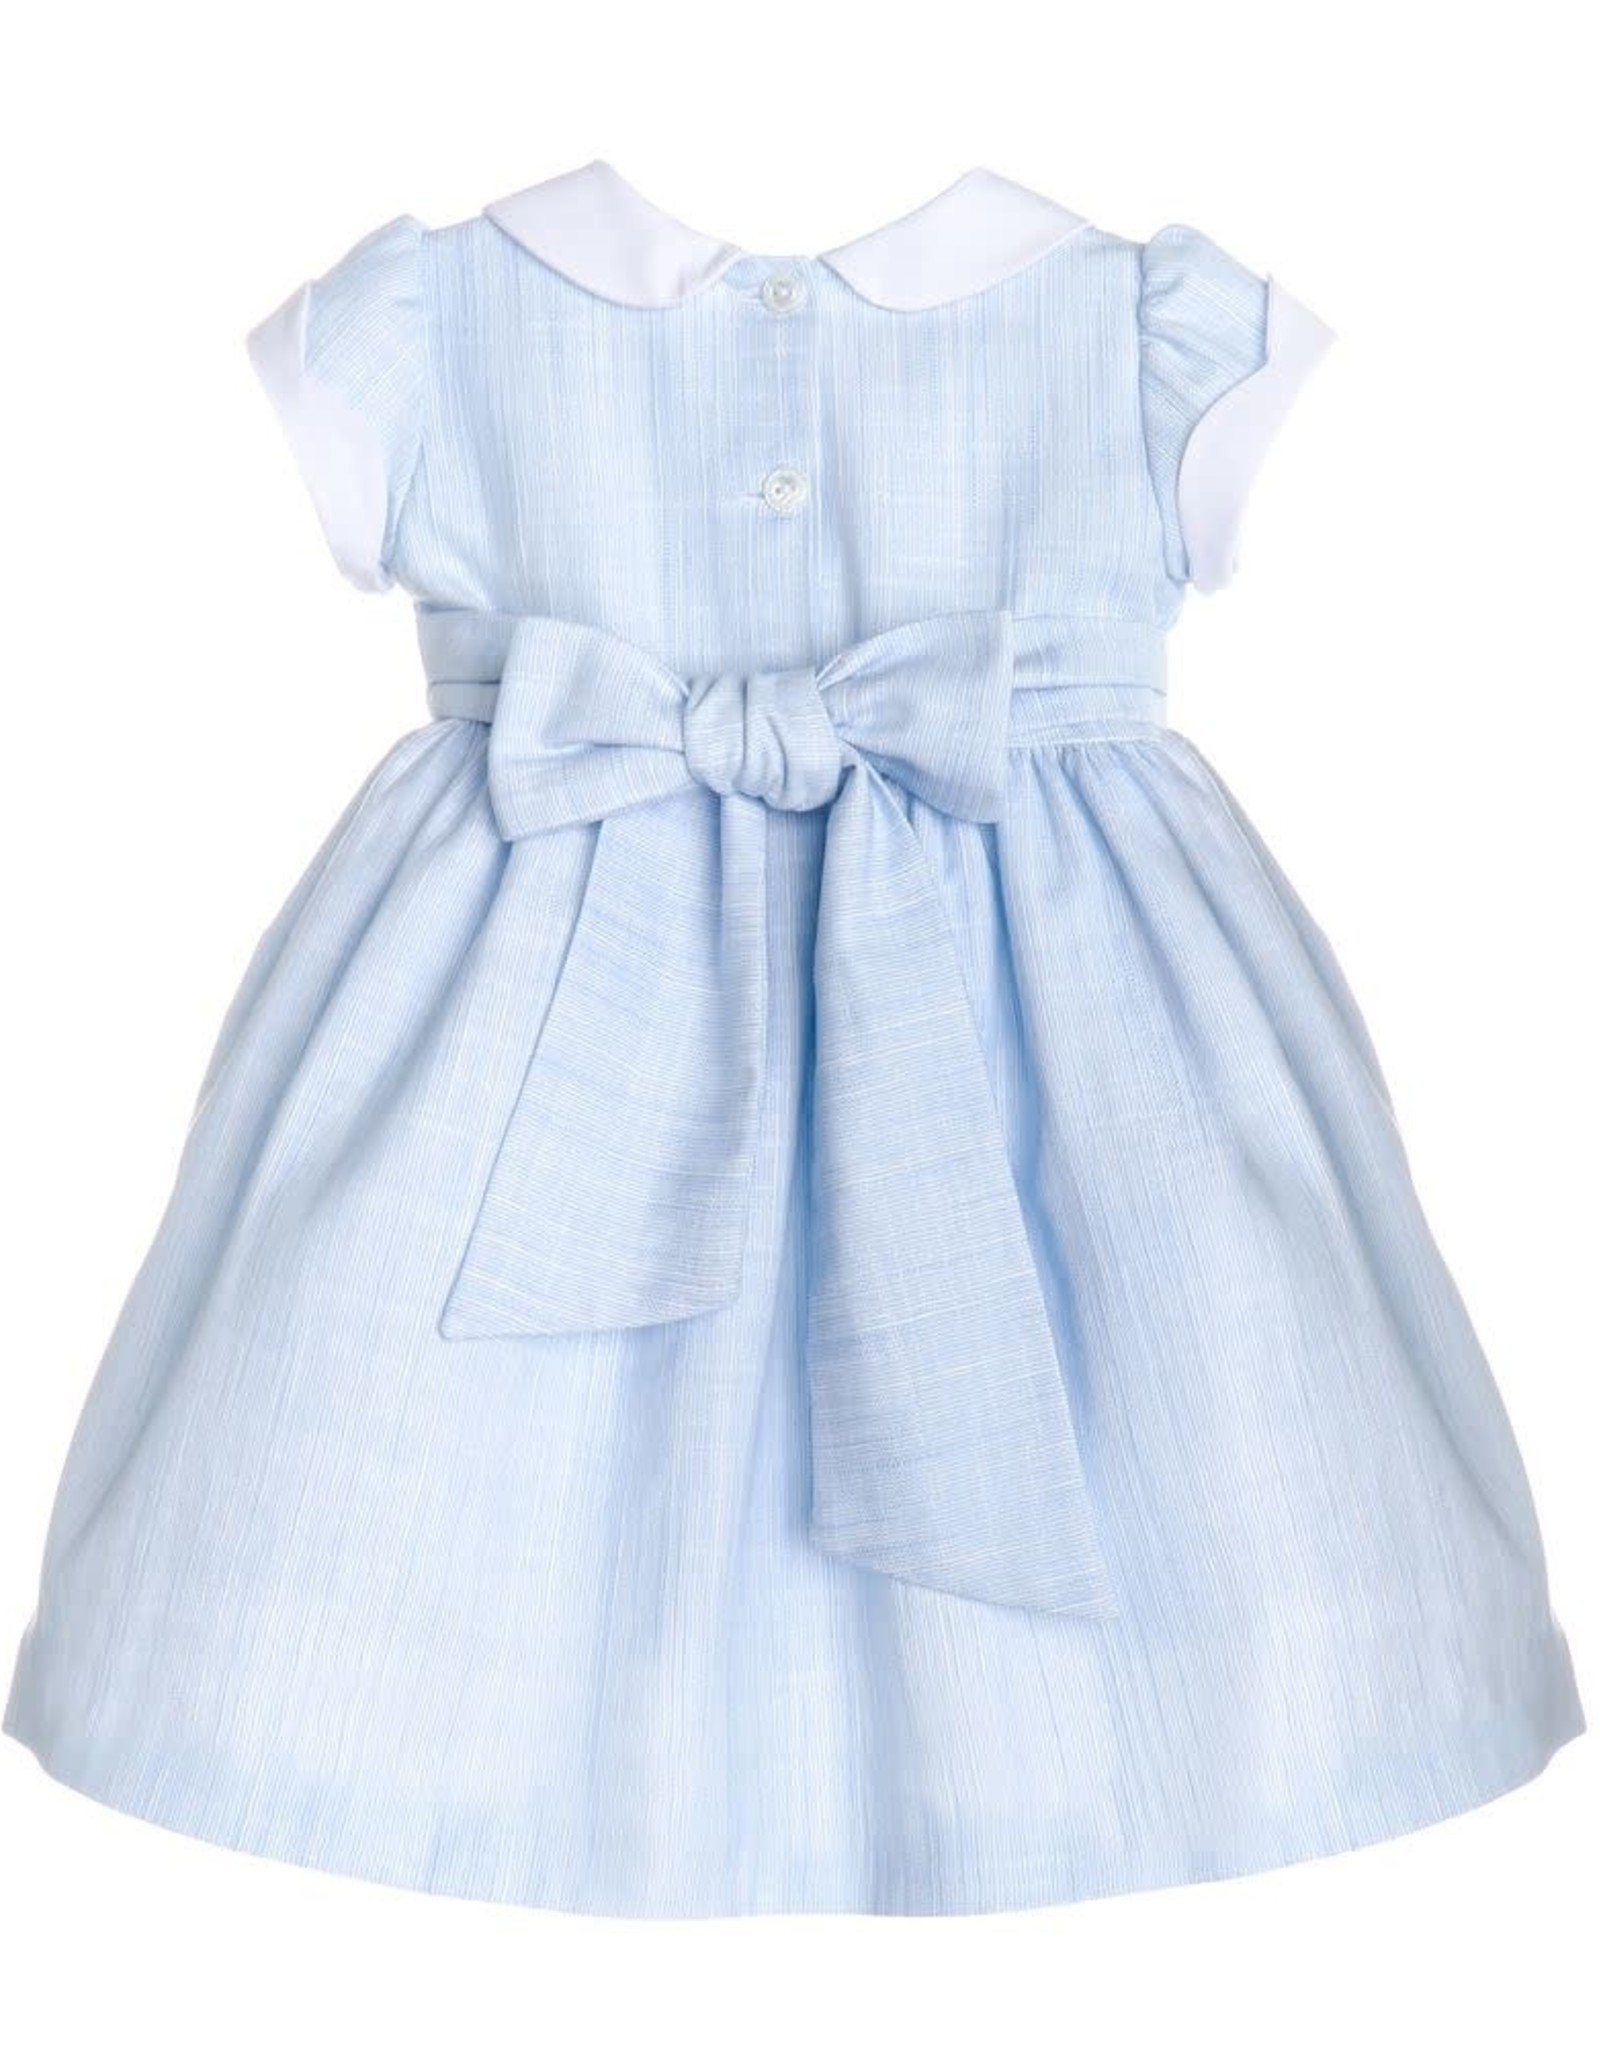 Sophie and Lucas Infant Dress Ltblue white collar and scallops